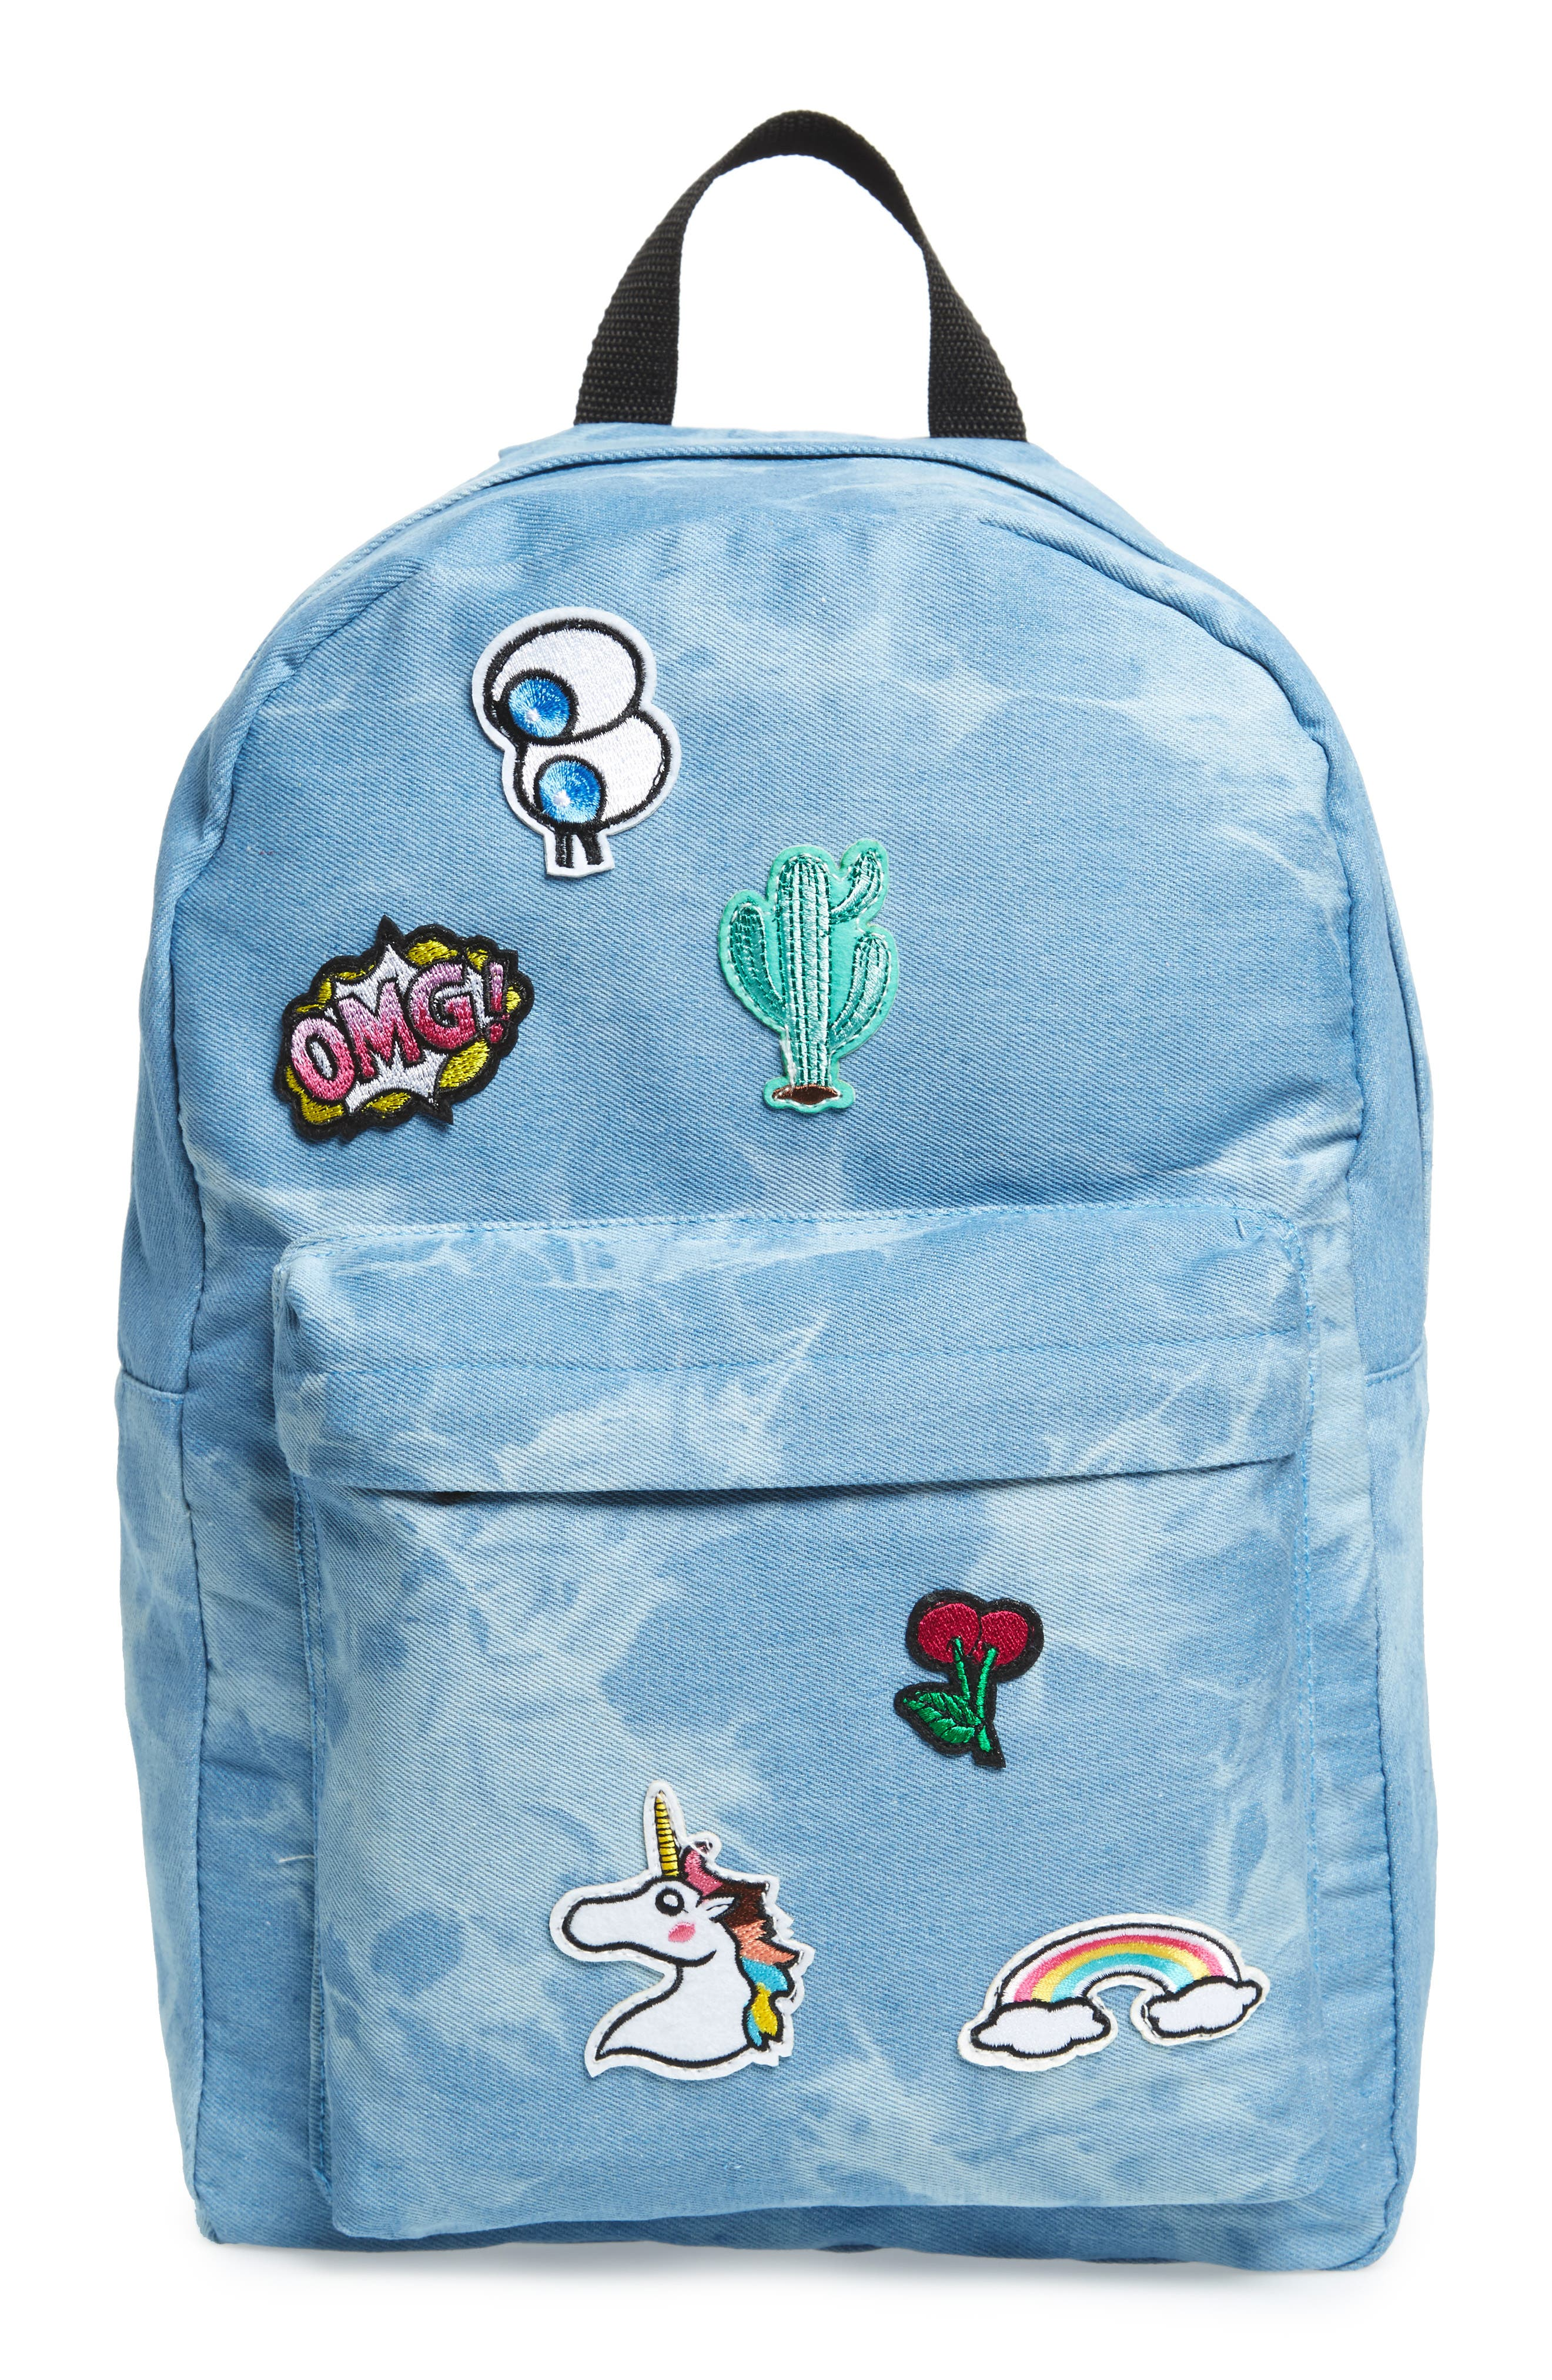 Accessory Collective Tie Dye Backpack,                         Main,                         color, Blue